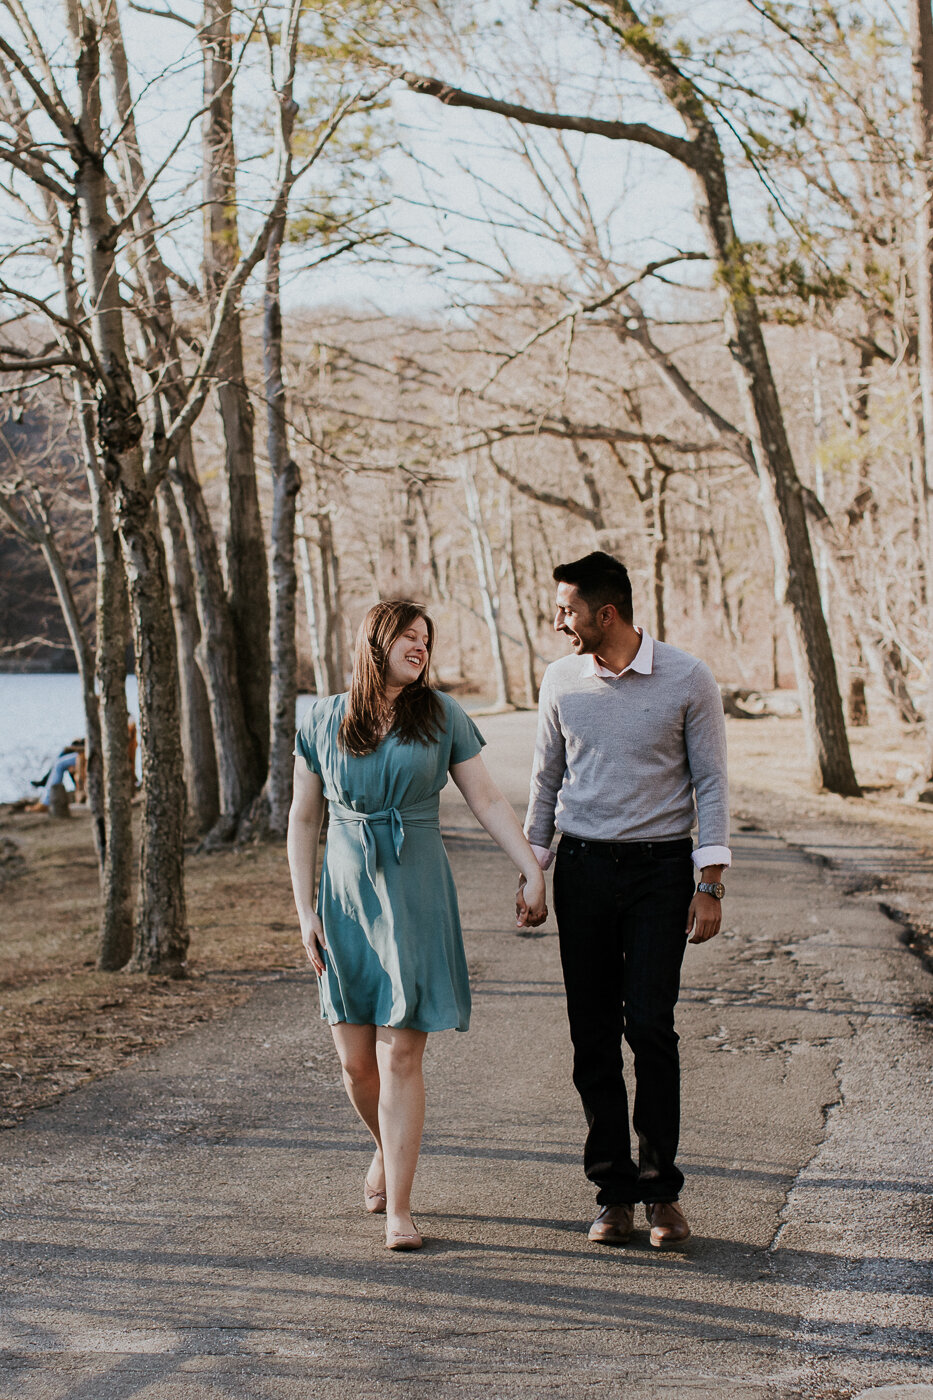 BearMountainStateParkEngagmentPhotos-1.jpg